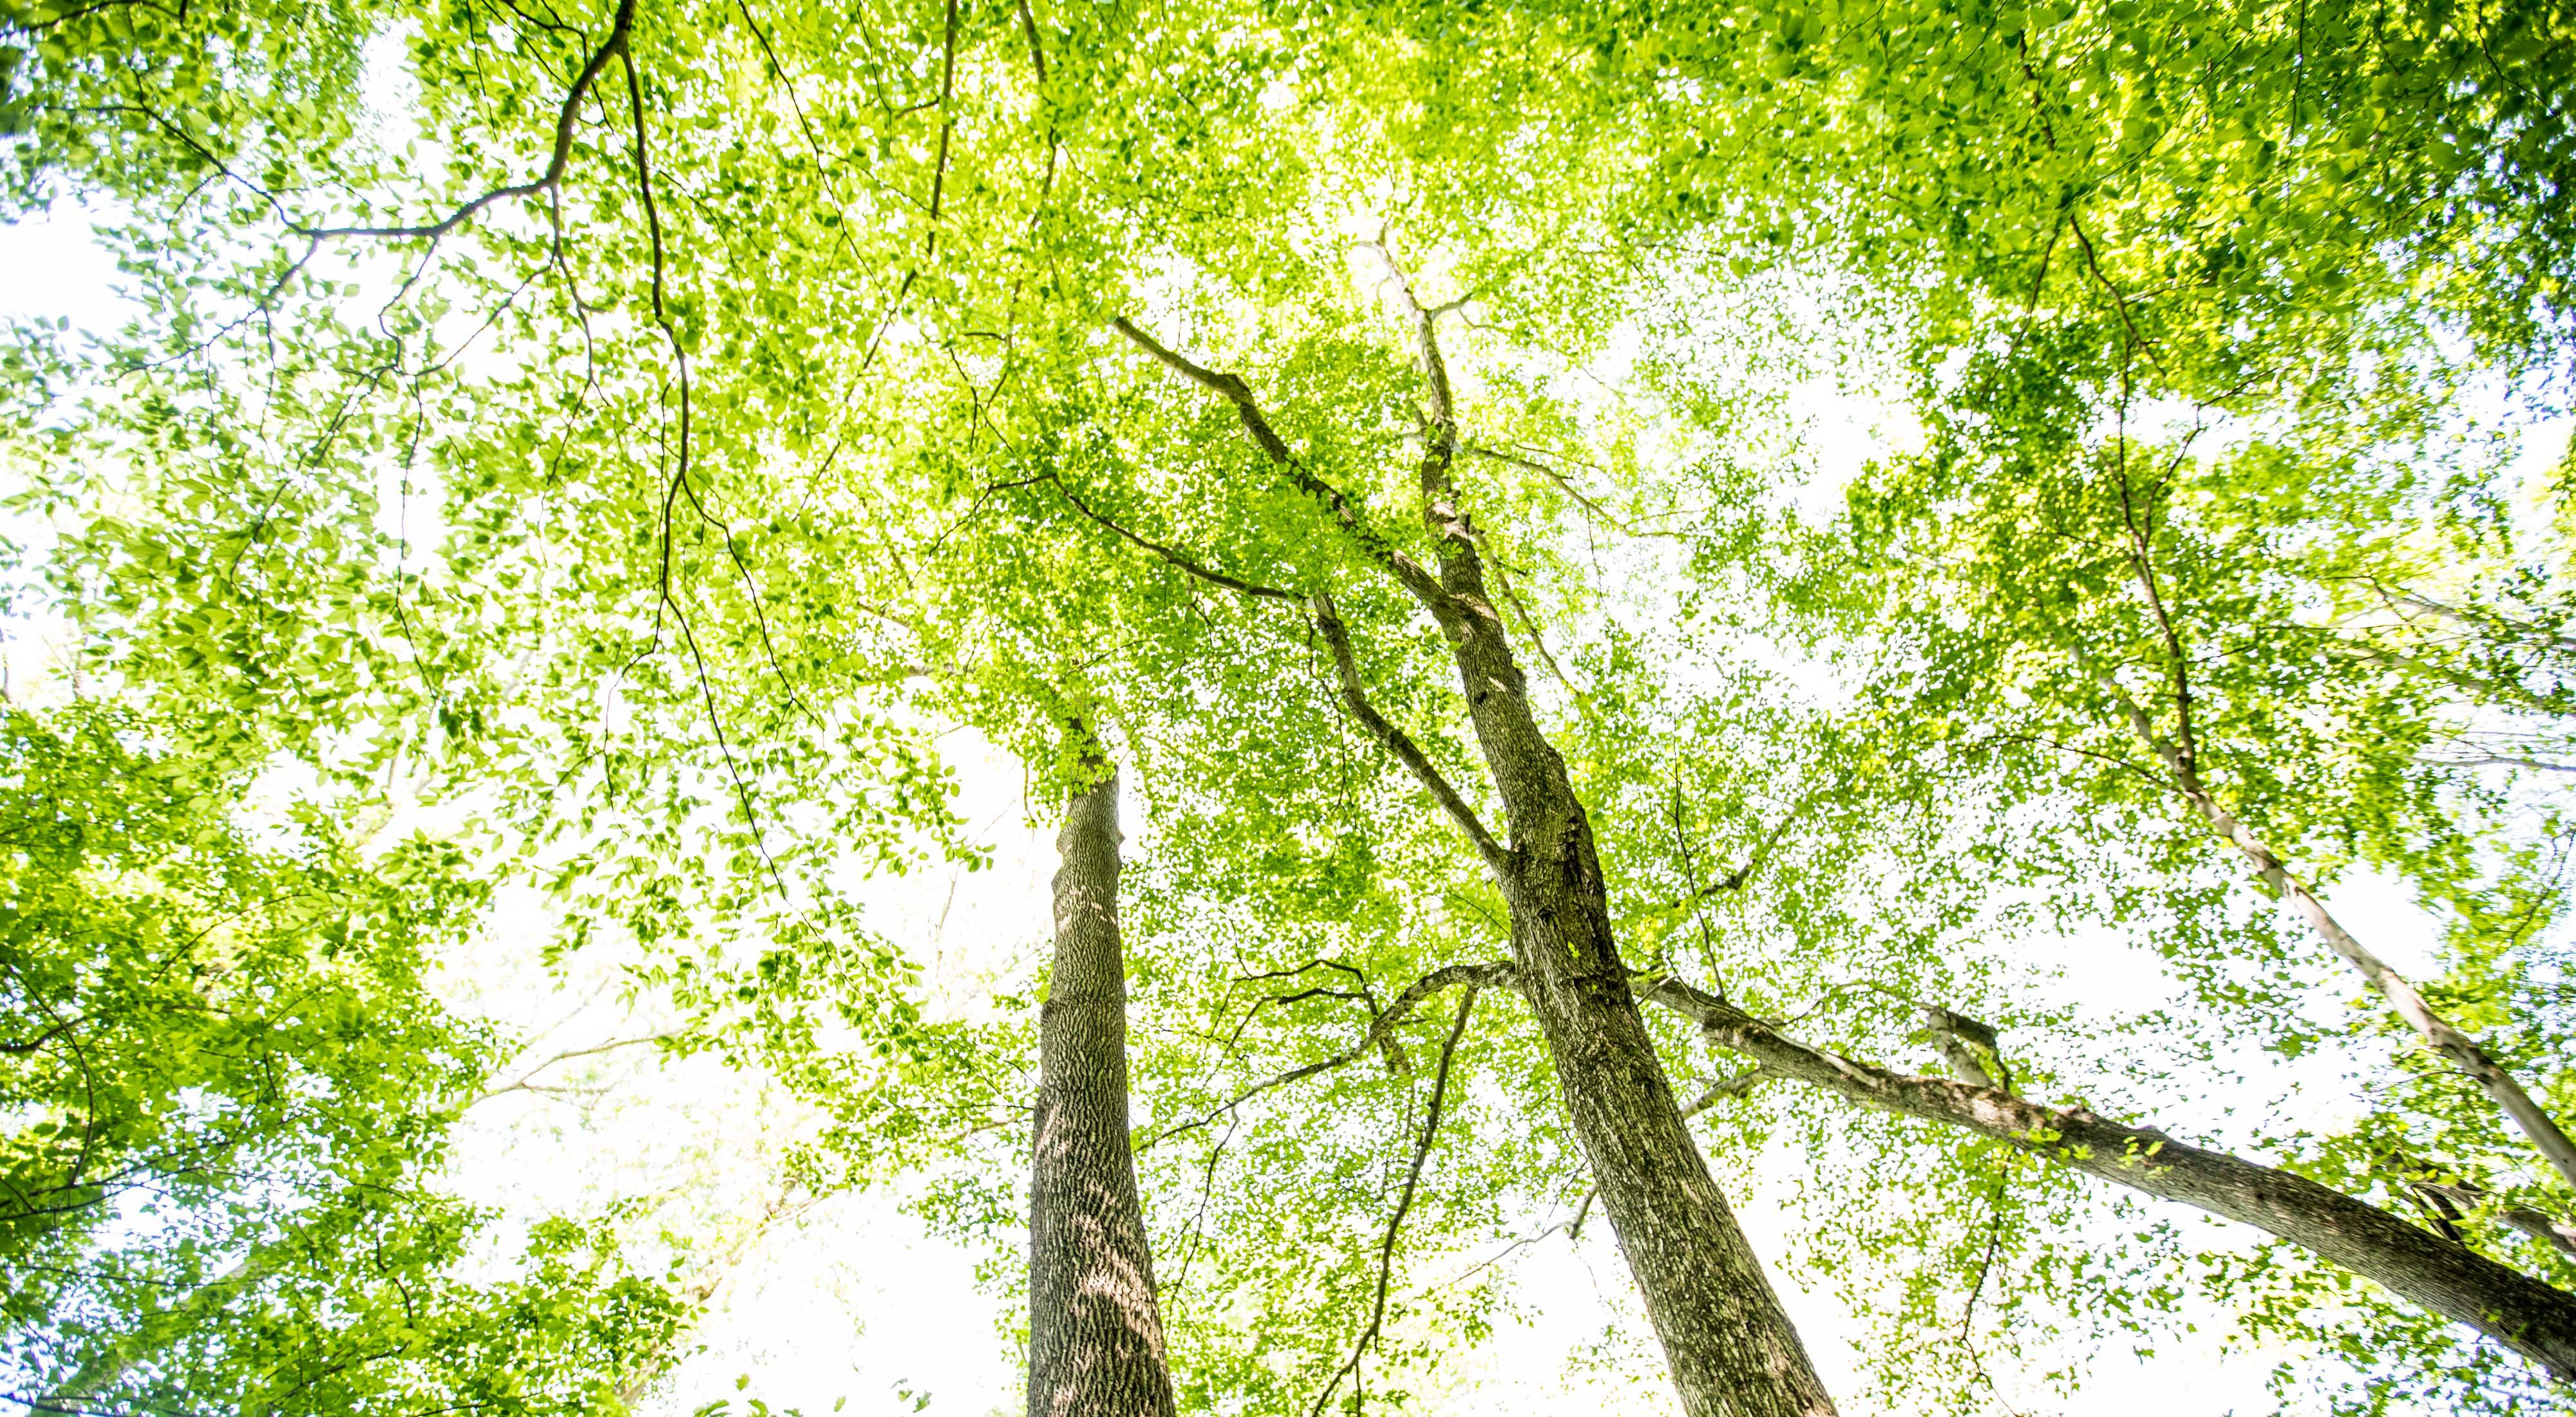 Looking up from the ground through a tree canopy of spring green leaves.